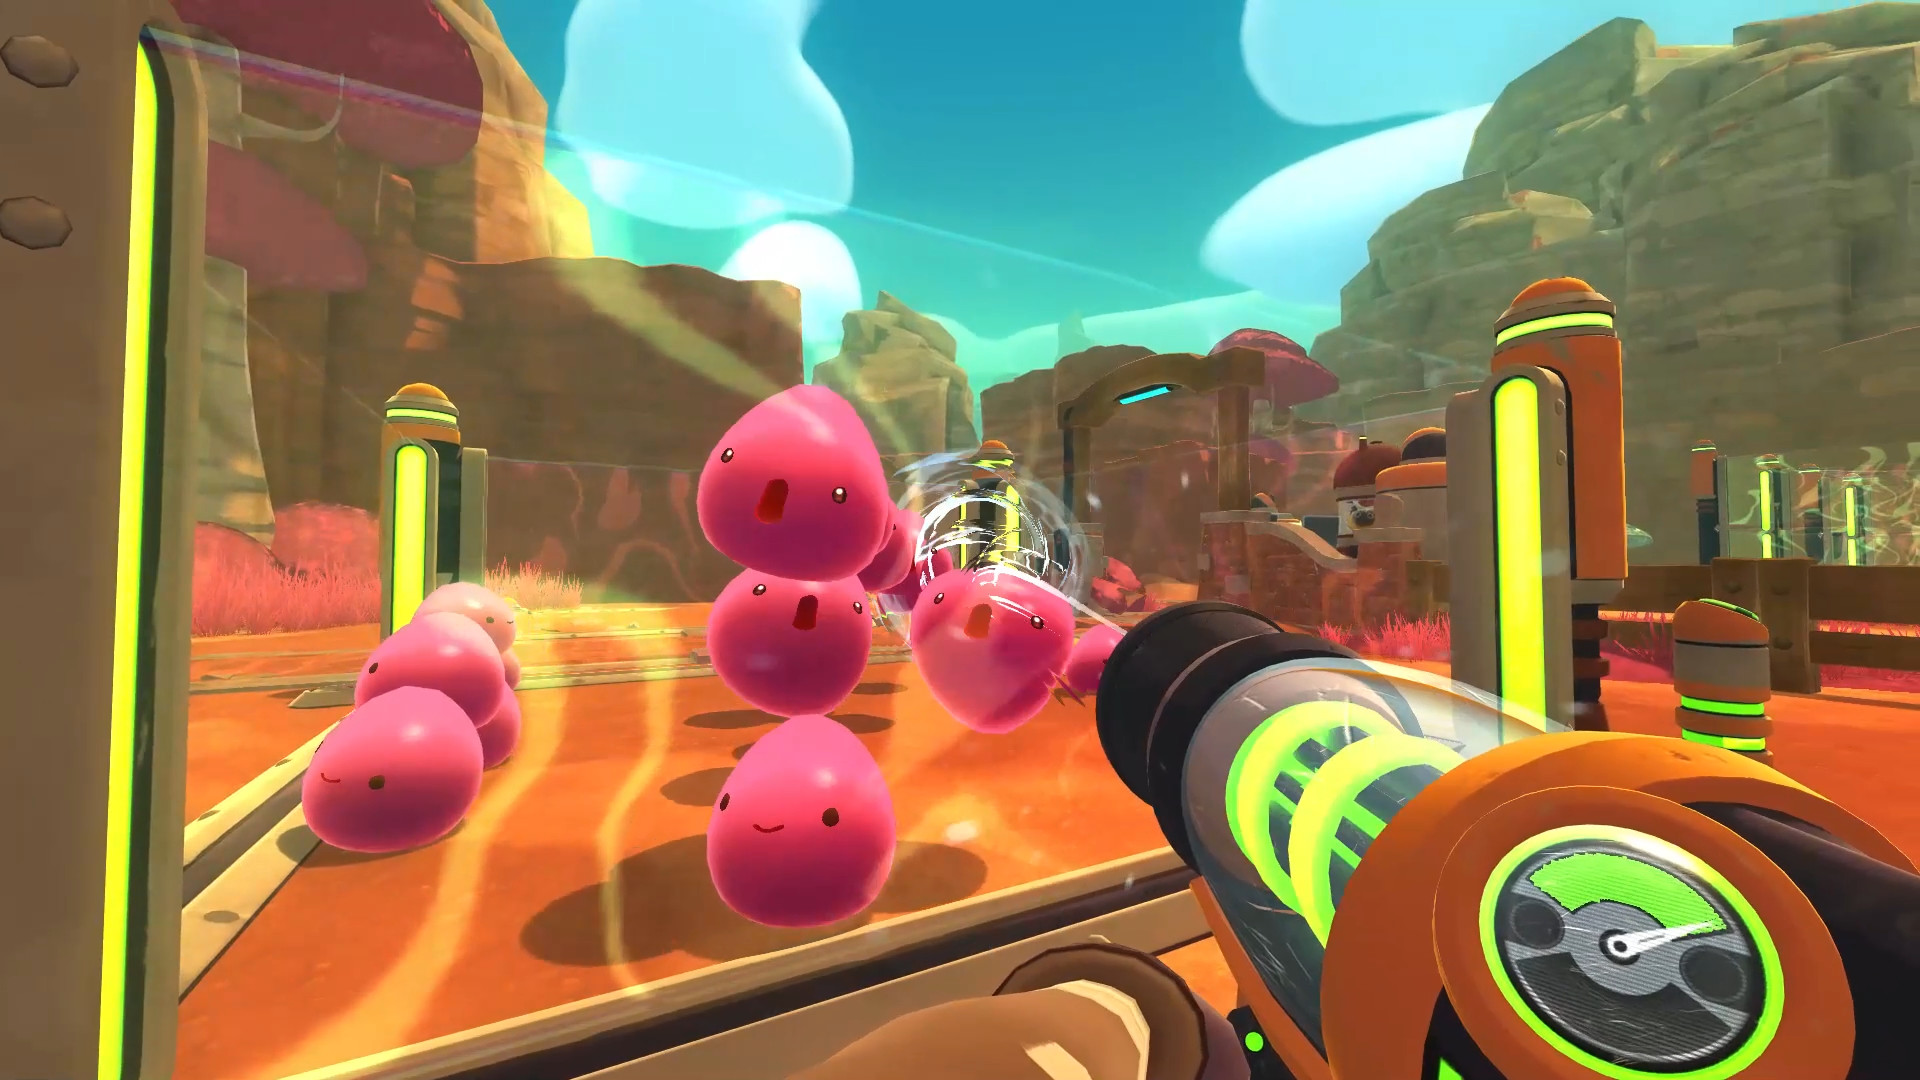 Slime Rancher's Game Director says crunch is not always a recipe for success